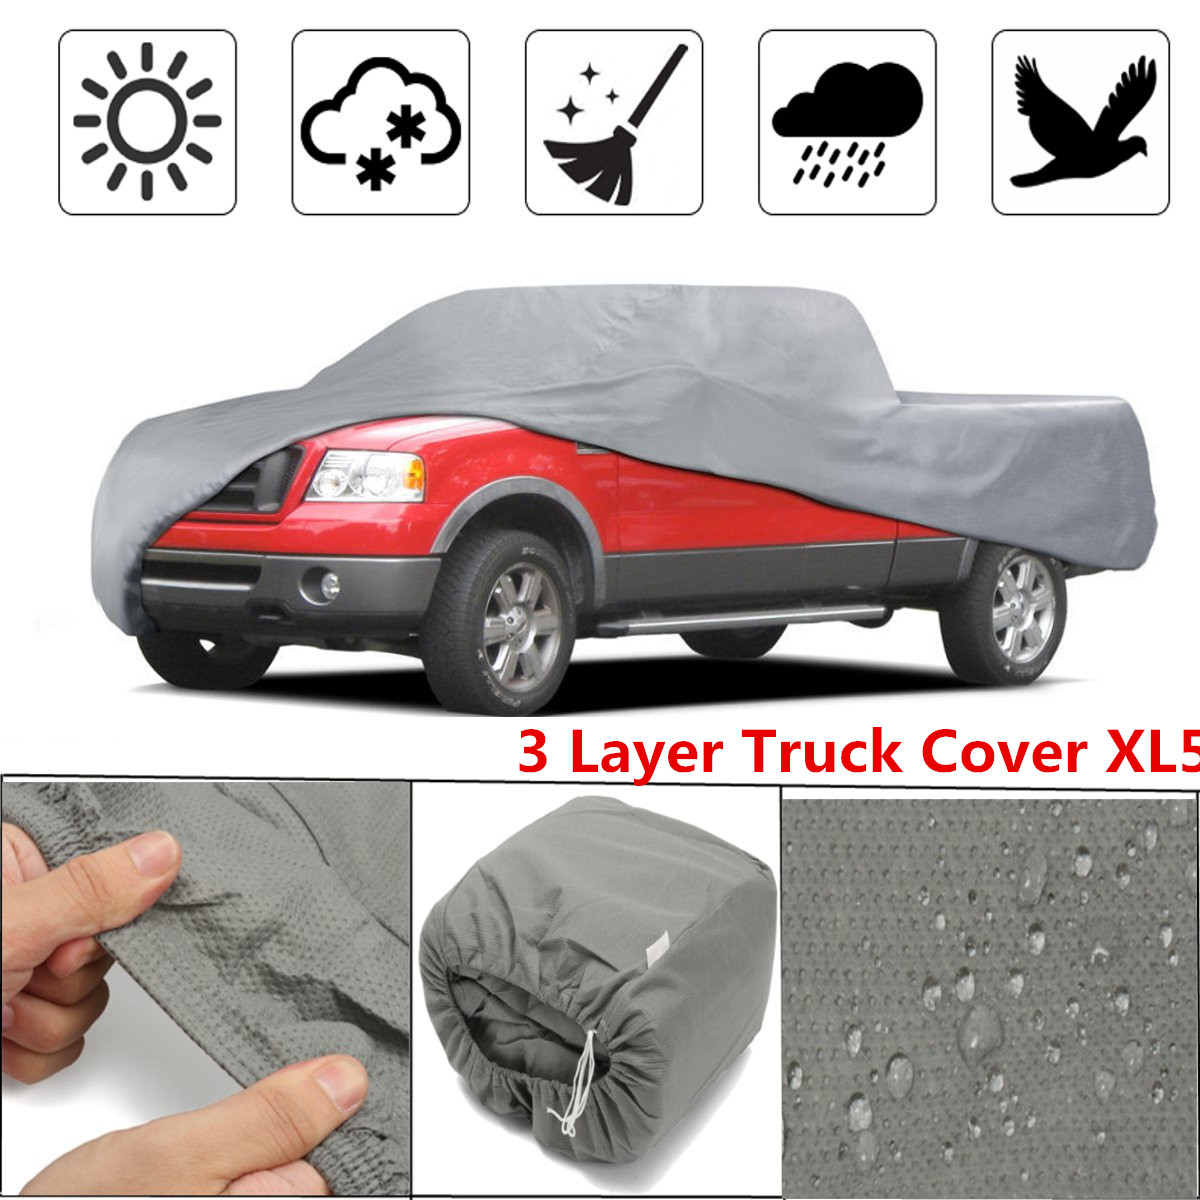 3 Layer Premium Truck Pickups Full Coverage Cover Outdoor Tough Waterproof Lining for CHEVY